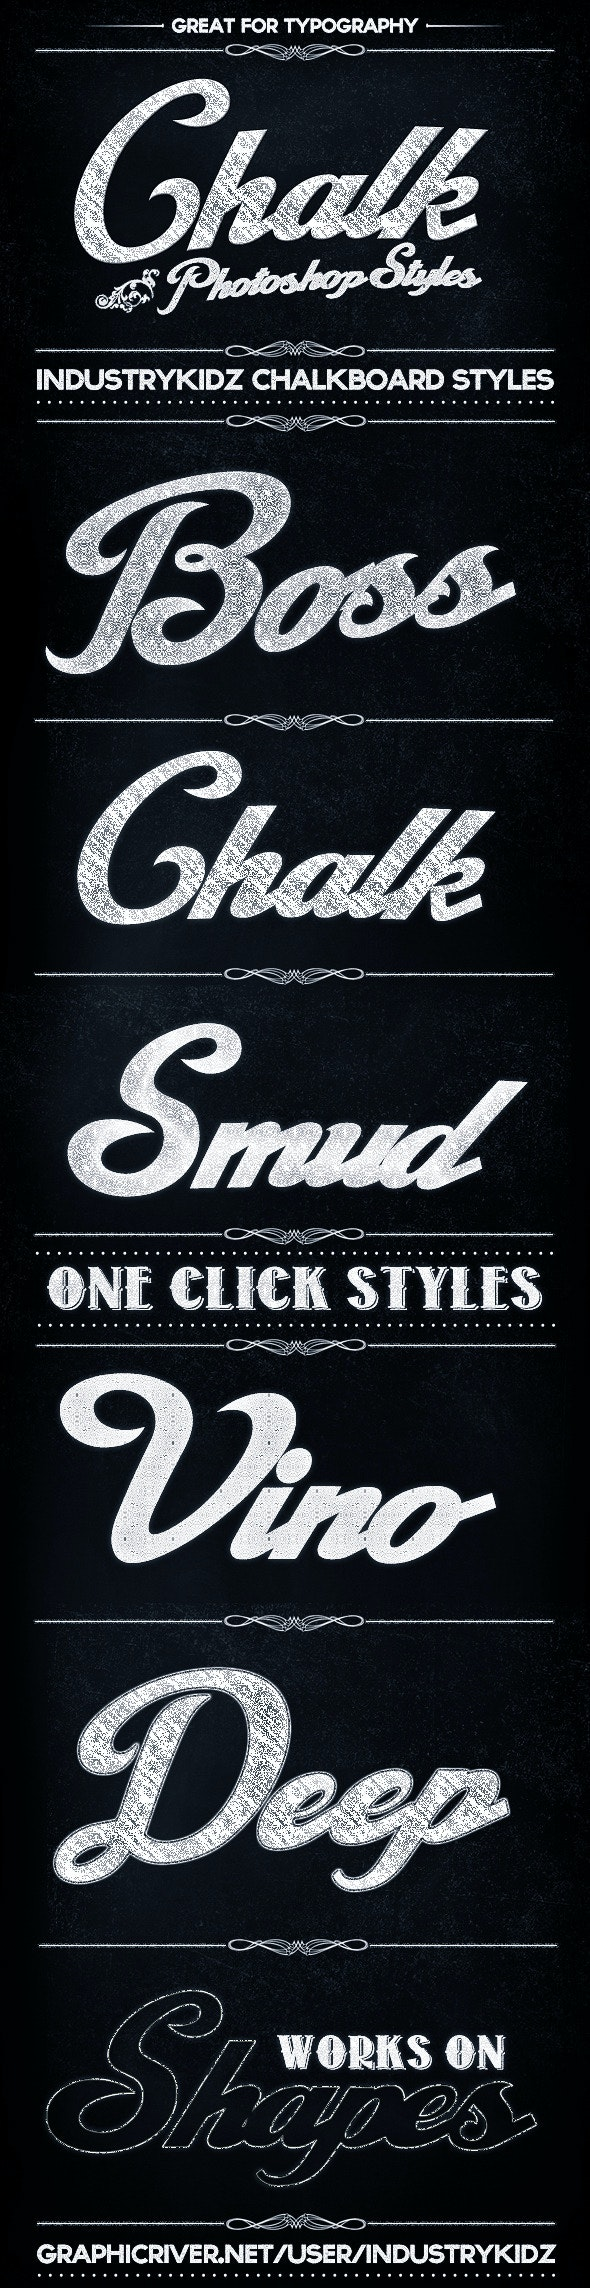 Chalkboard Photoshop Layer Styles - Text Effects Styles